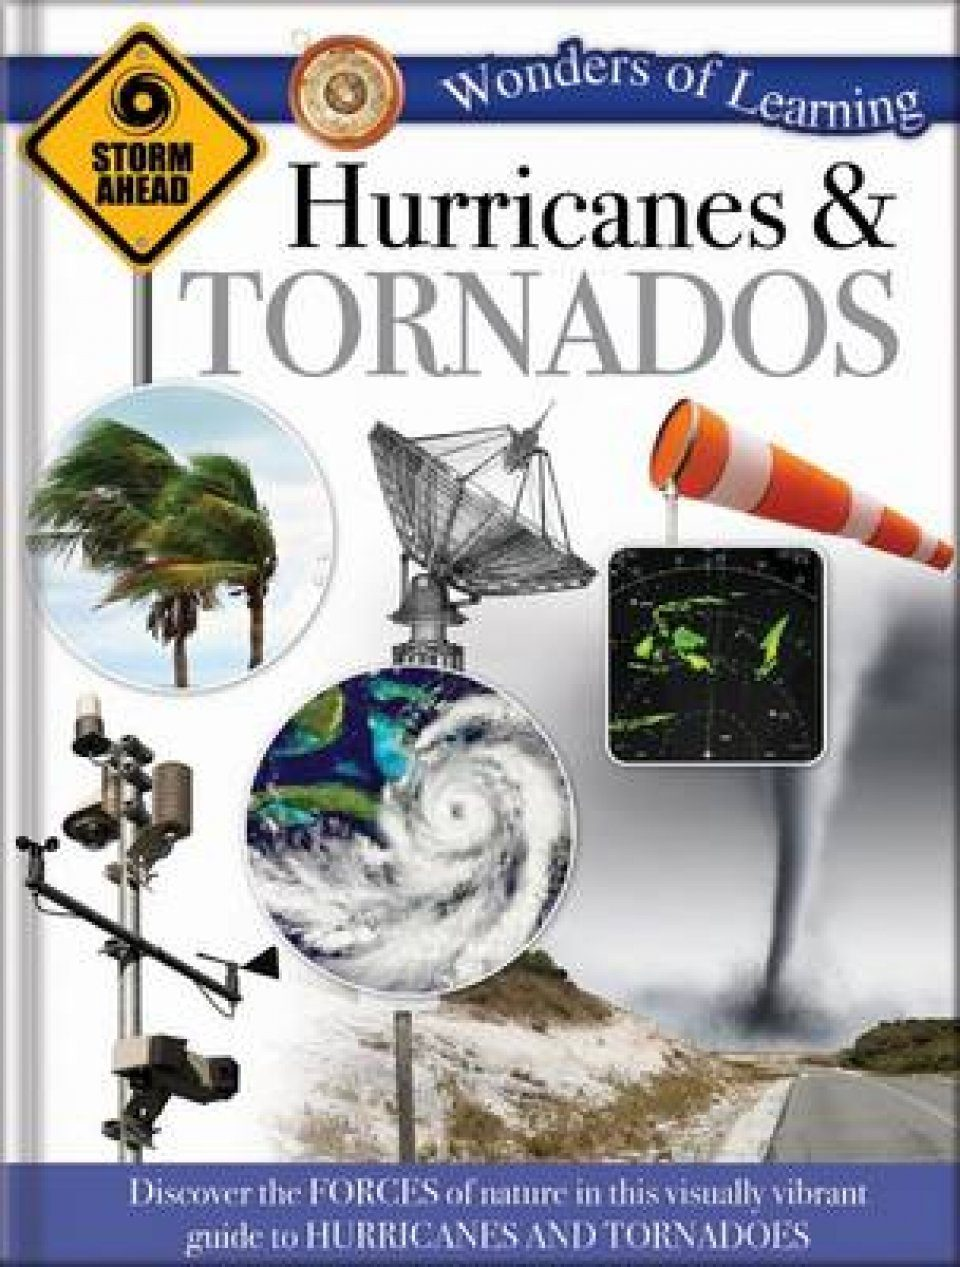 Wonders of Learning: Hurricans & Tornadoes